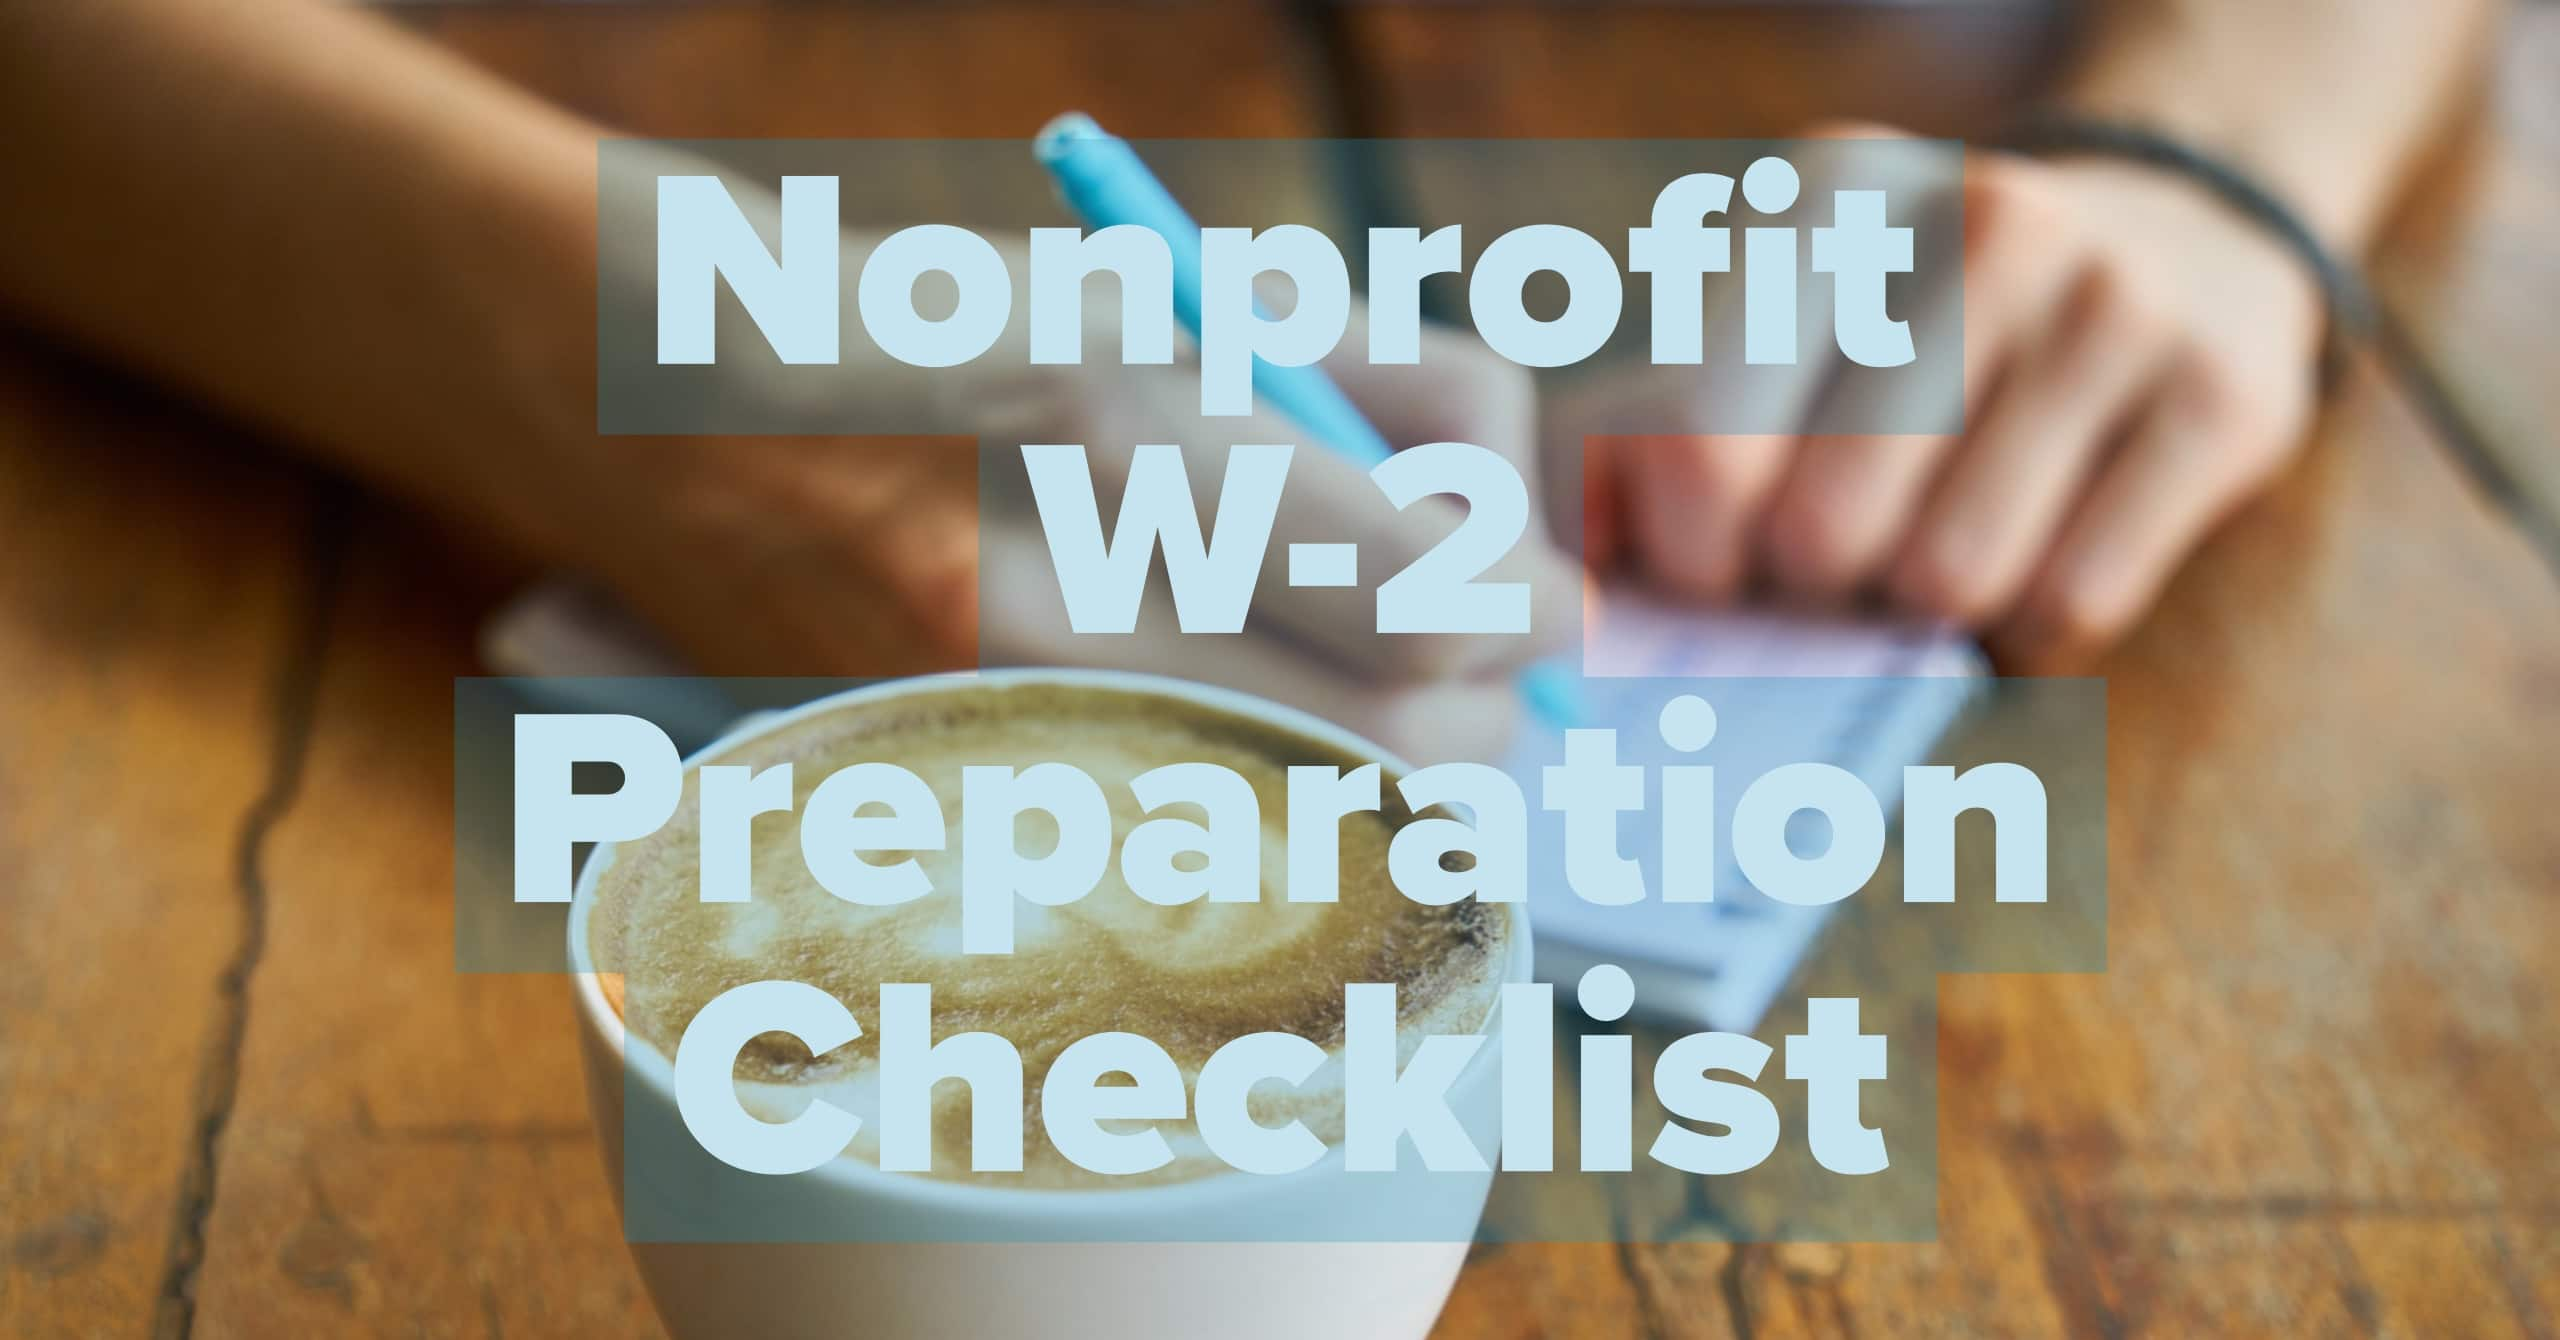 Requirements for Year-End Nonprofit W-2 Preparation